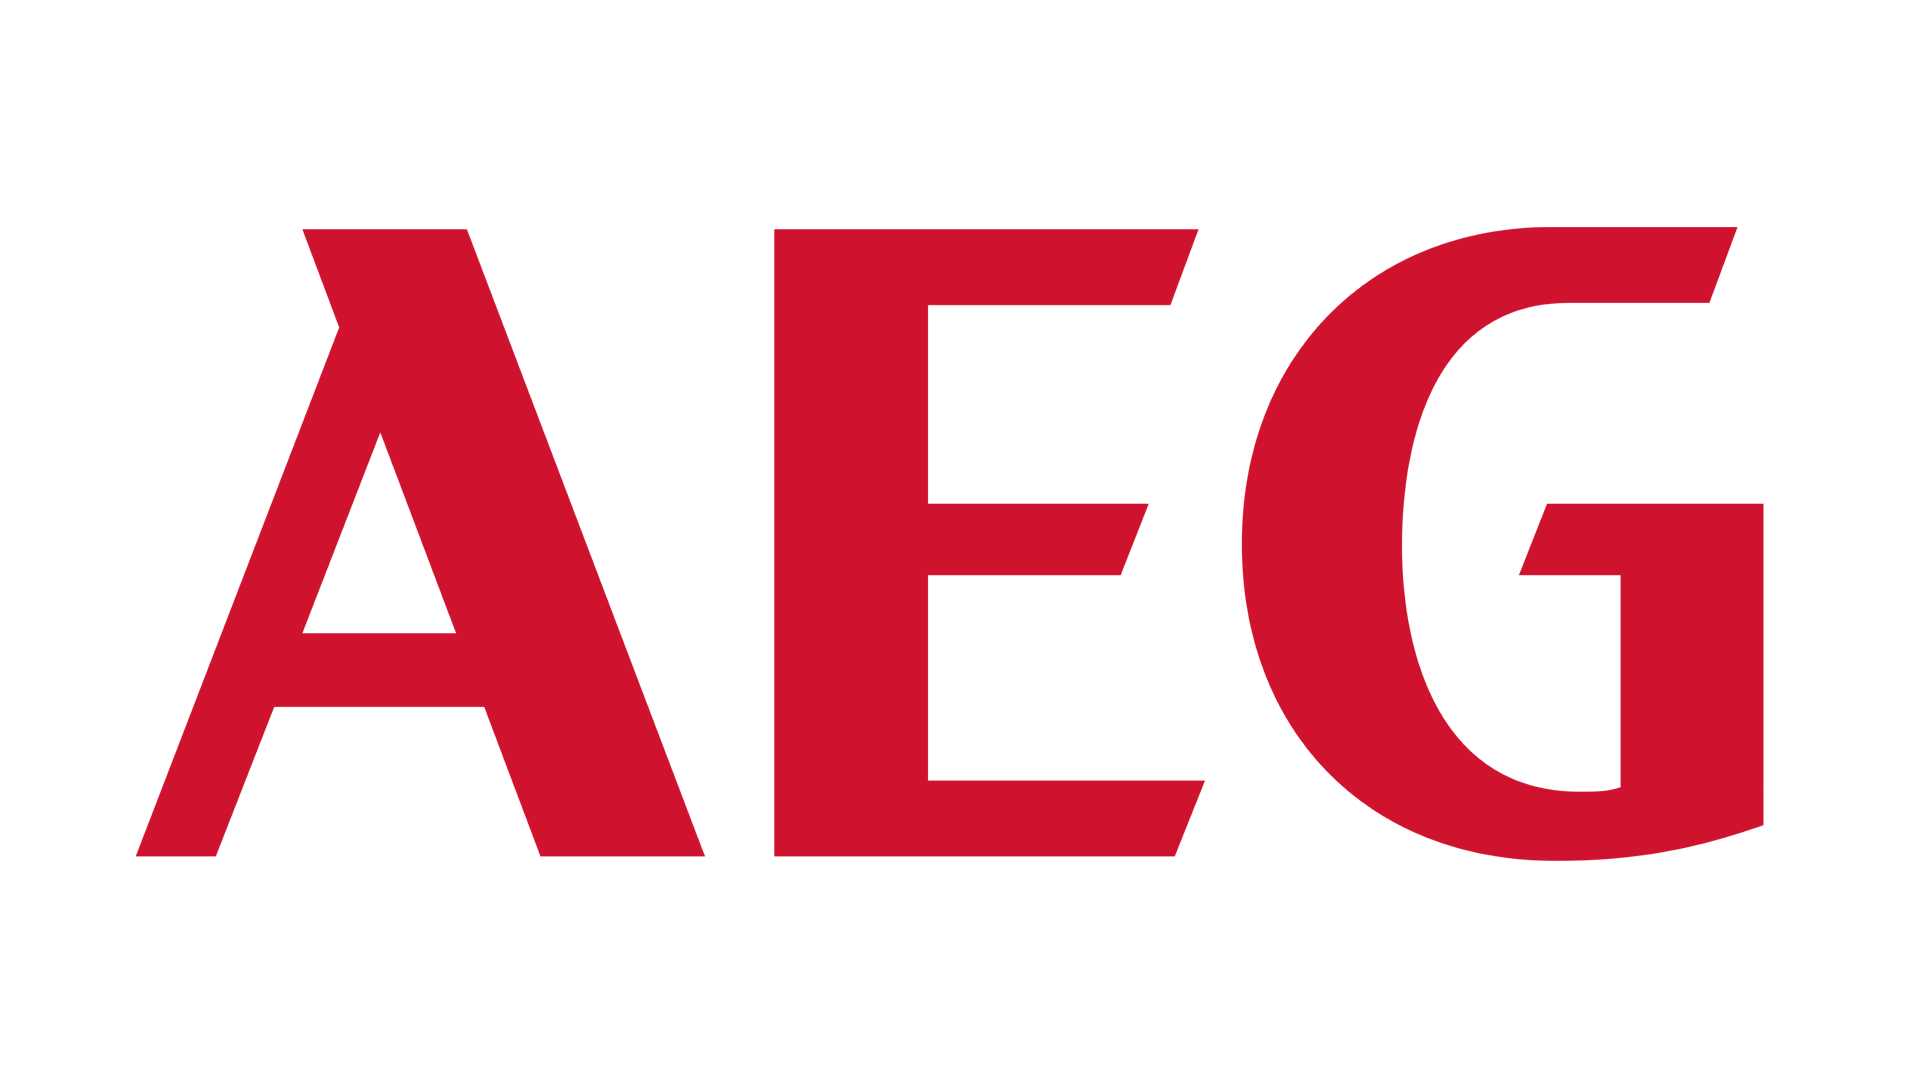 company aeg logo aeg symbol meaning history and evolution #32517